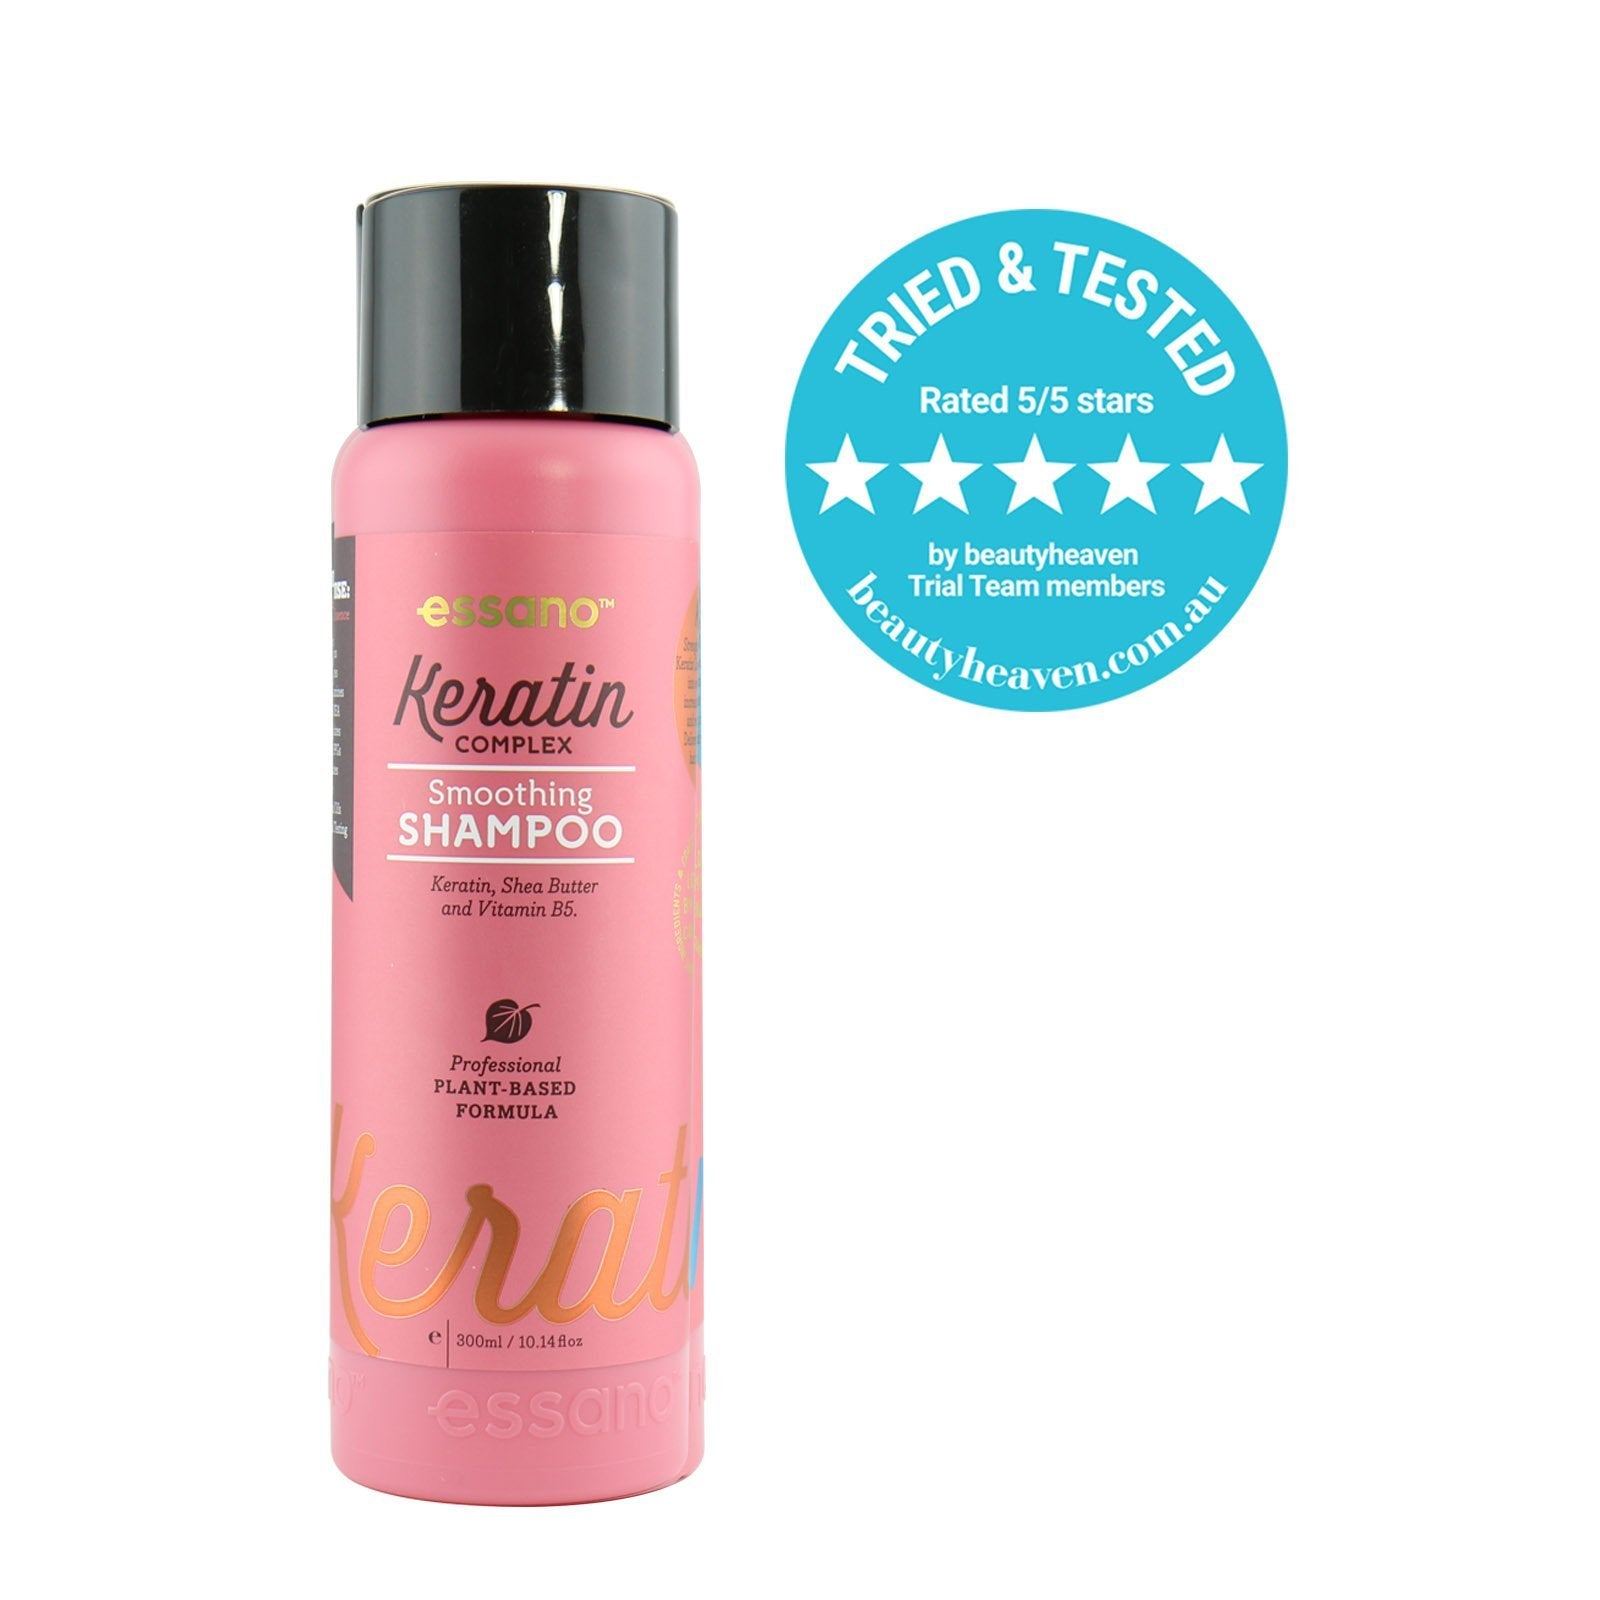 Keratin Complex Smoothing Shampoo 300ml